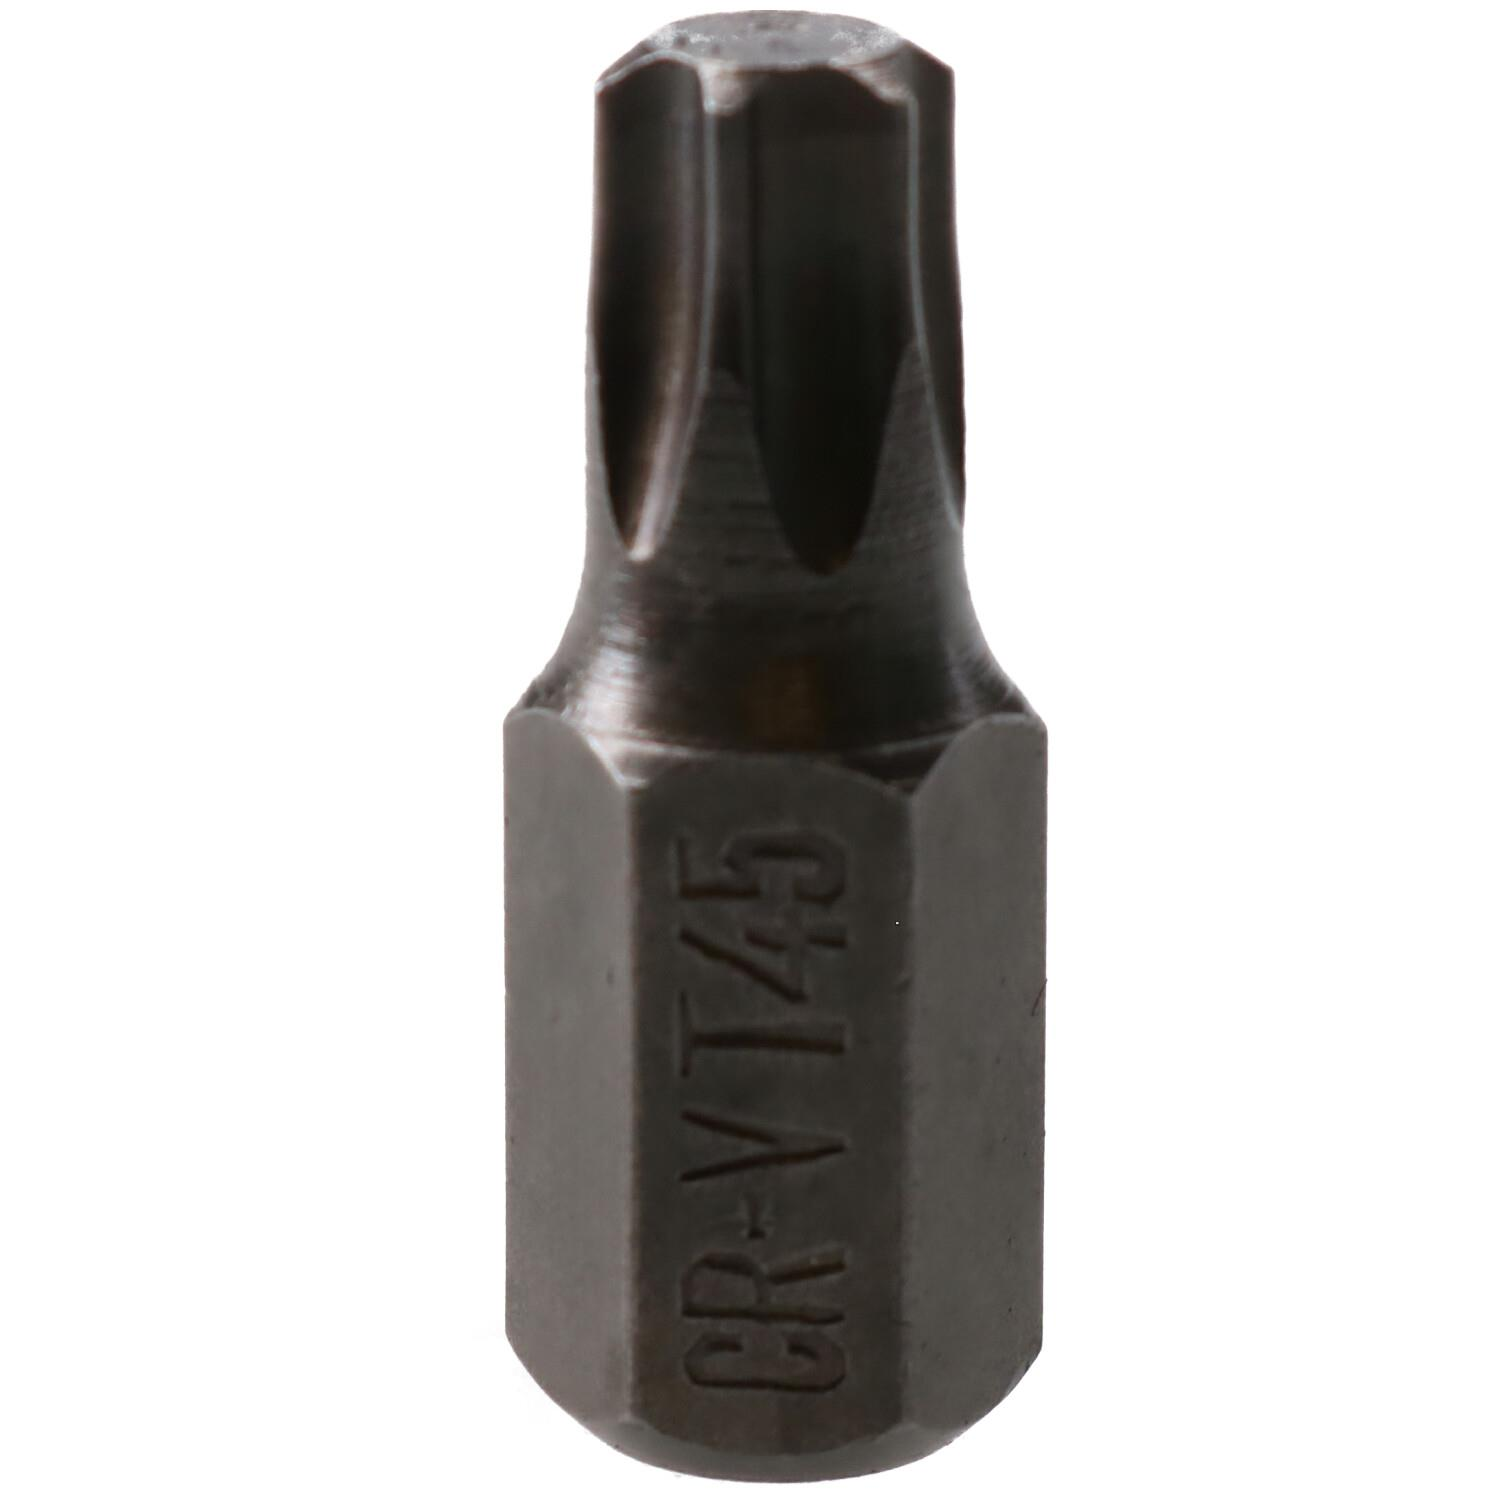 T60 Torx Star Male Bits With 10mm Shank 30mm or 75mm Length T20